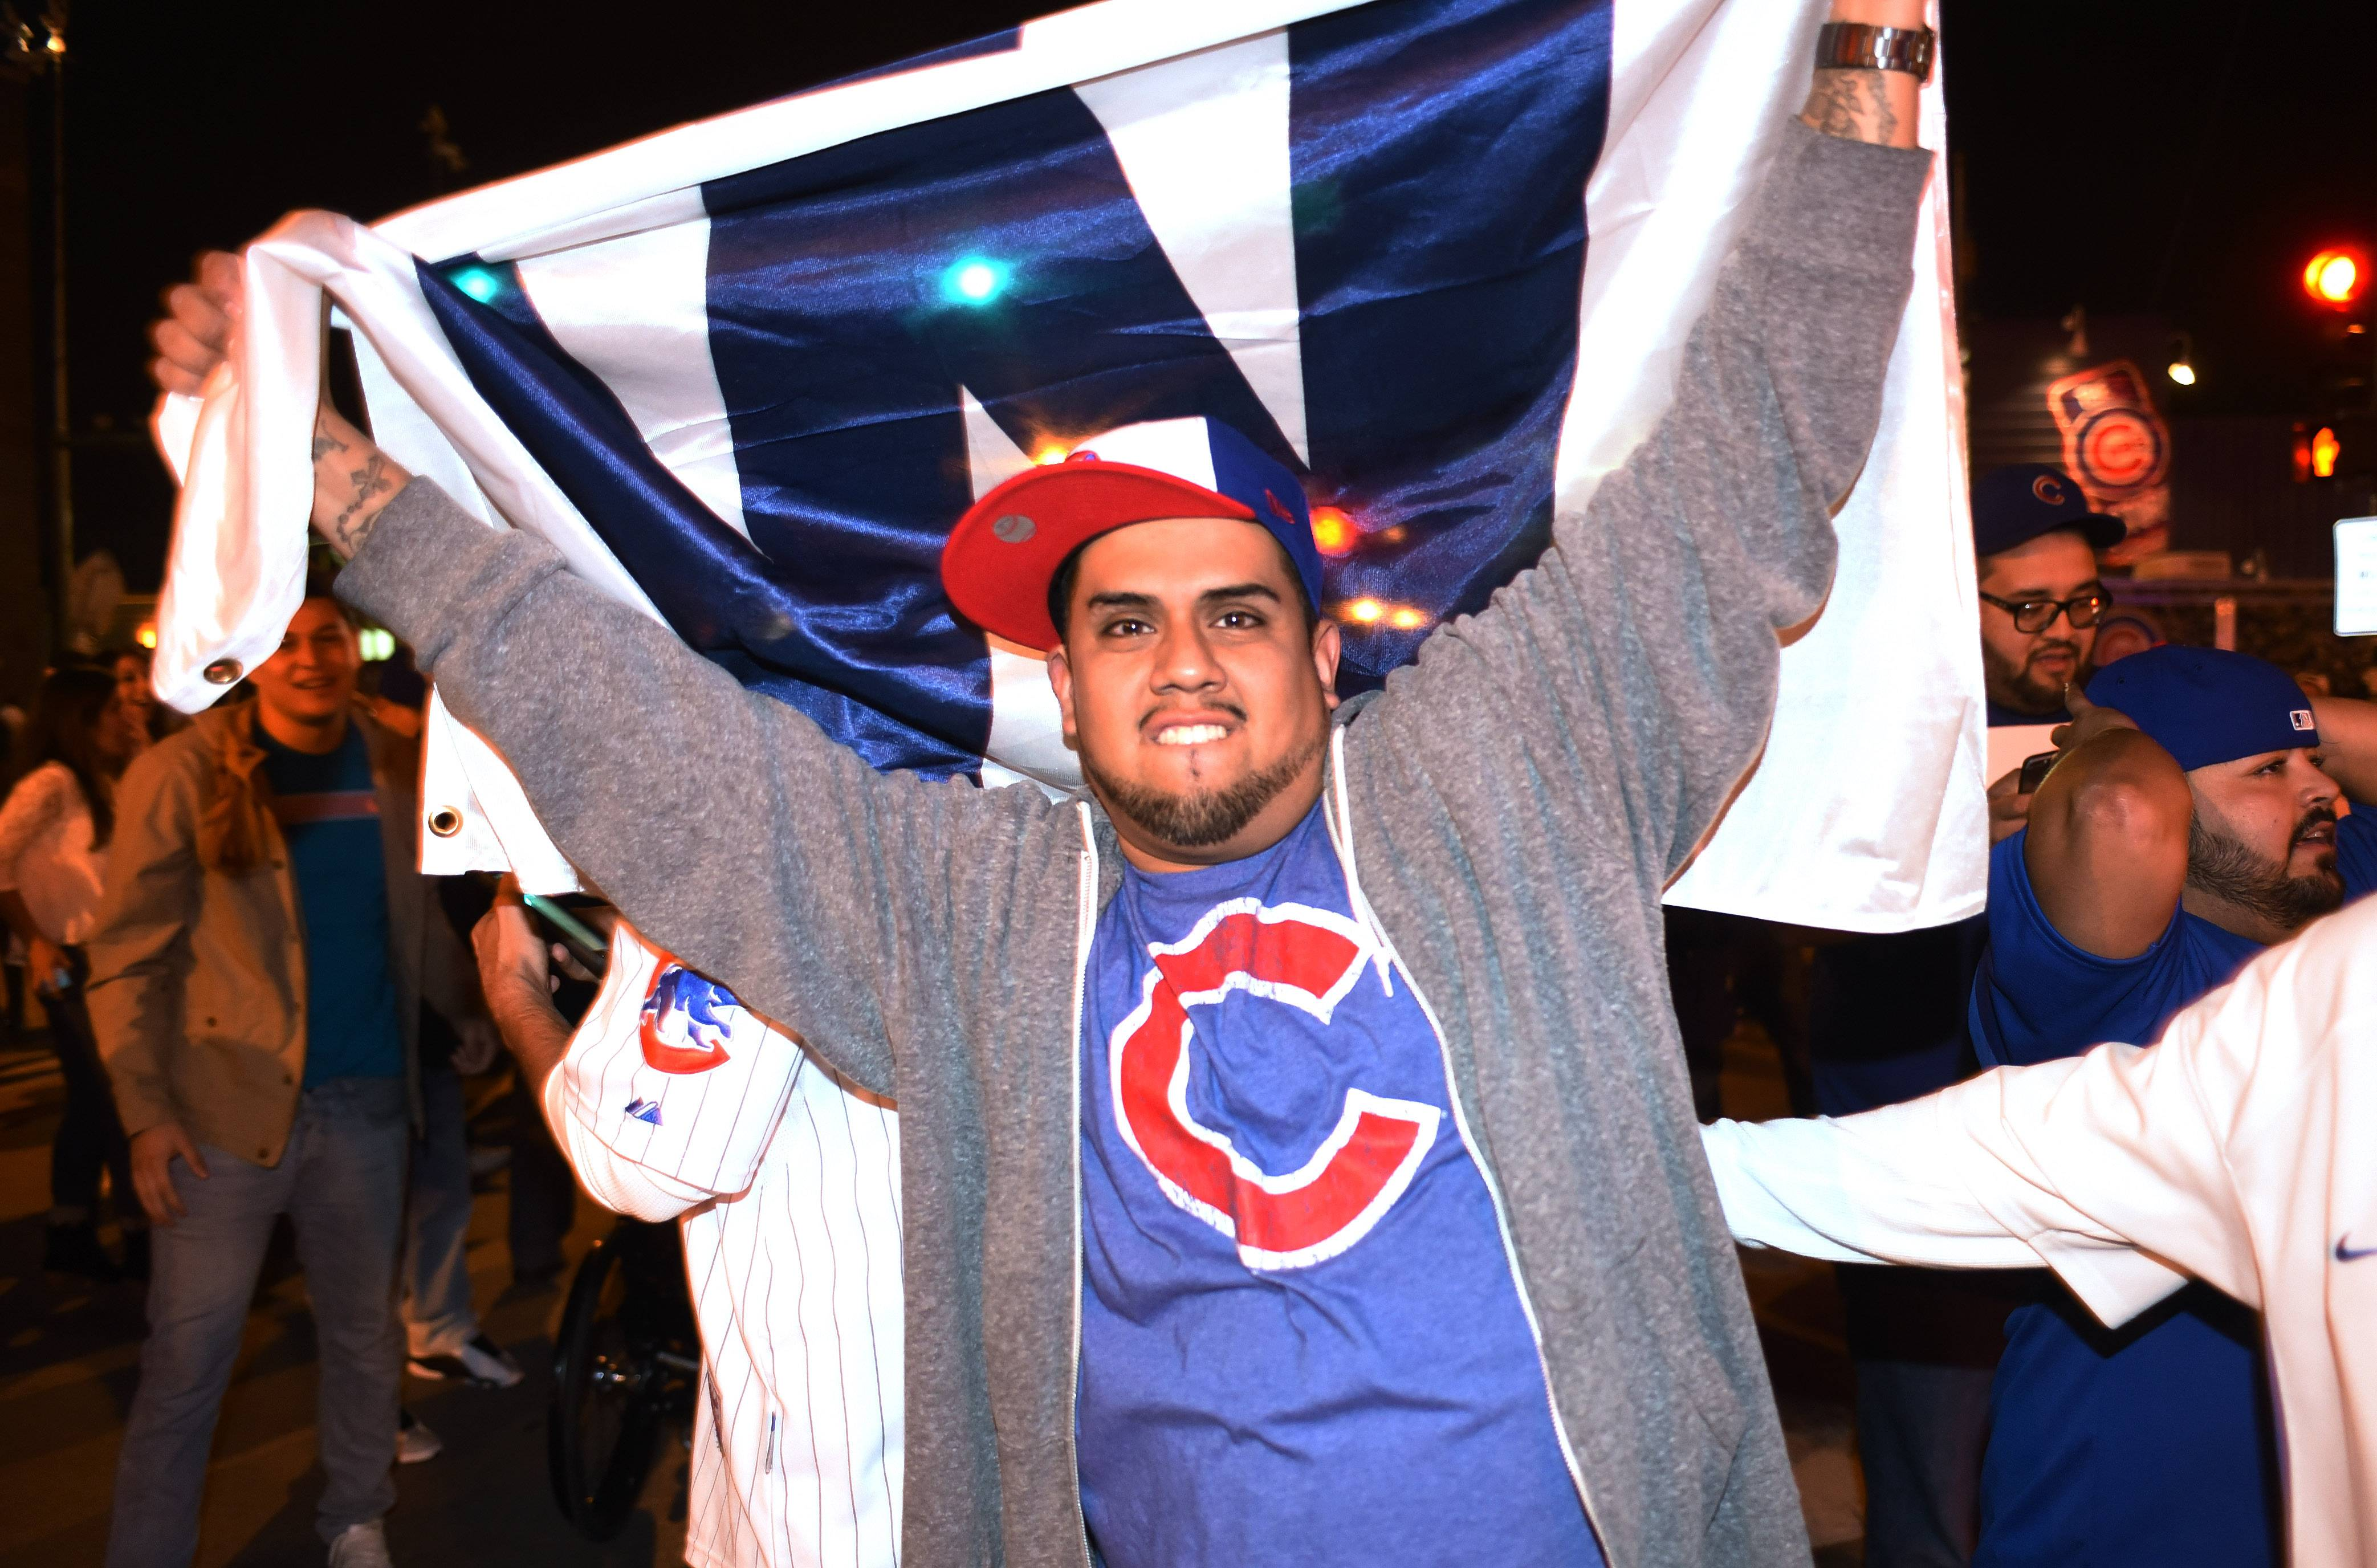 Spiegel: Why Cubs fans have little to fear